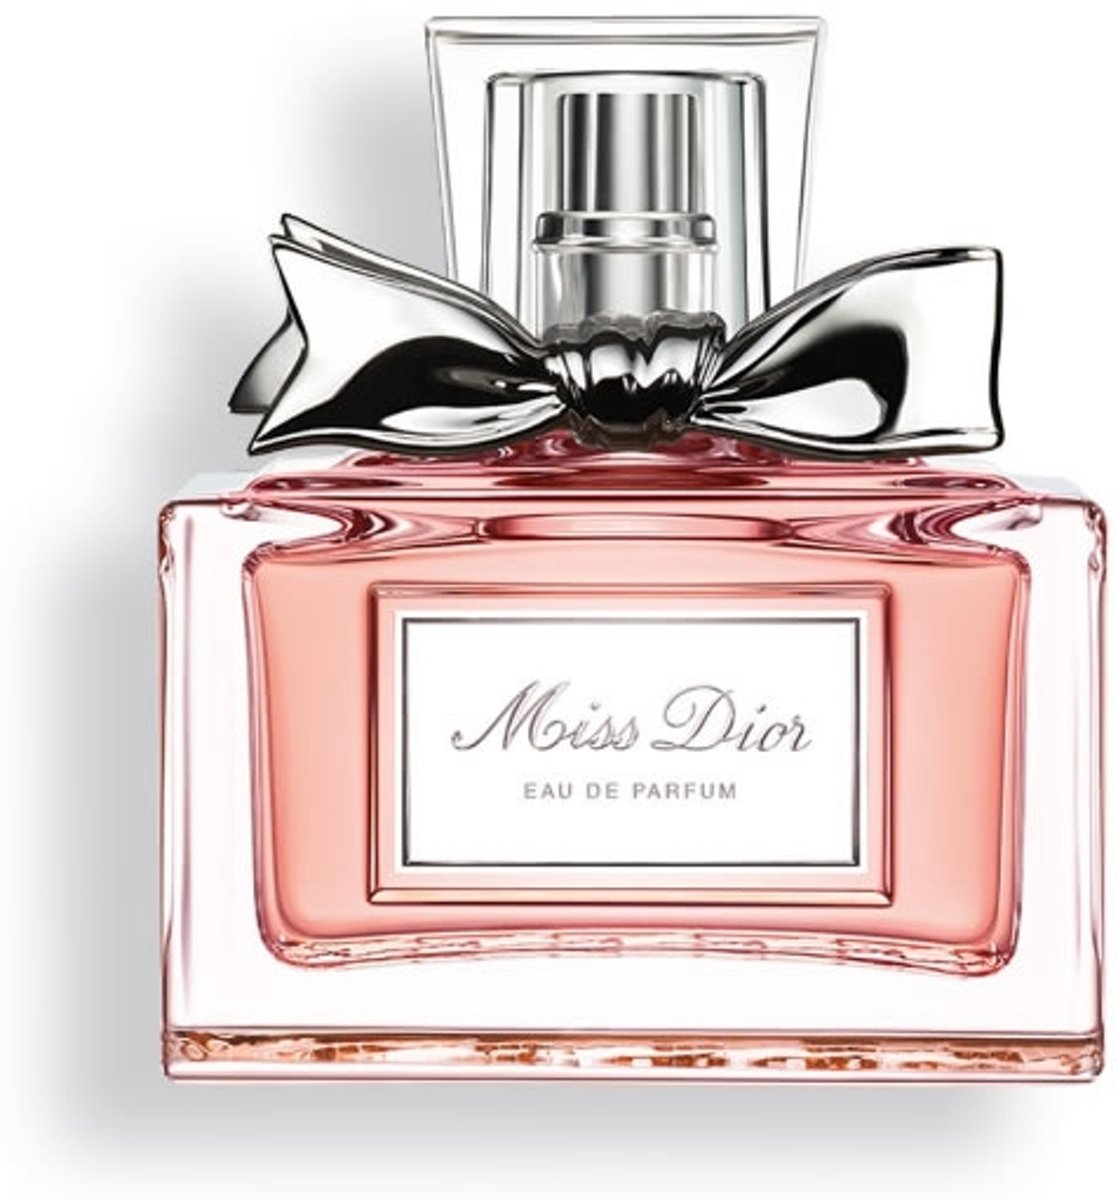 MULTI BUNDEL 2 stuks Miss Dior 2017 Eau De Perfume Spray 30ml